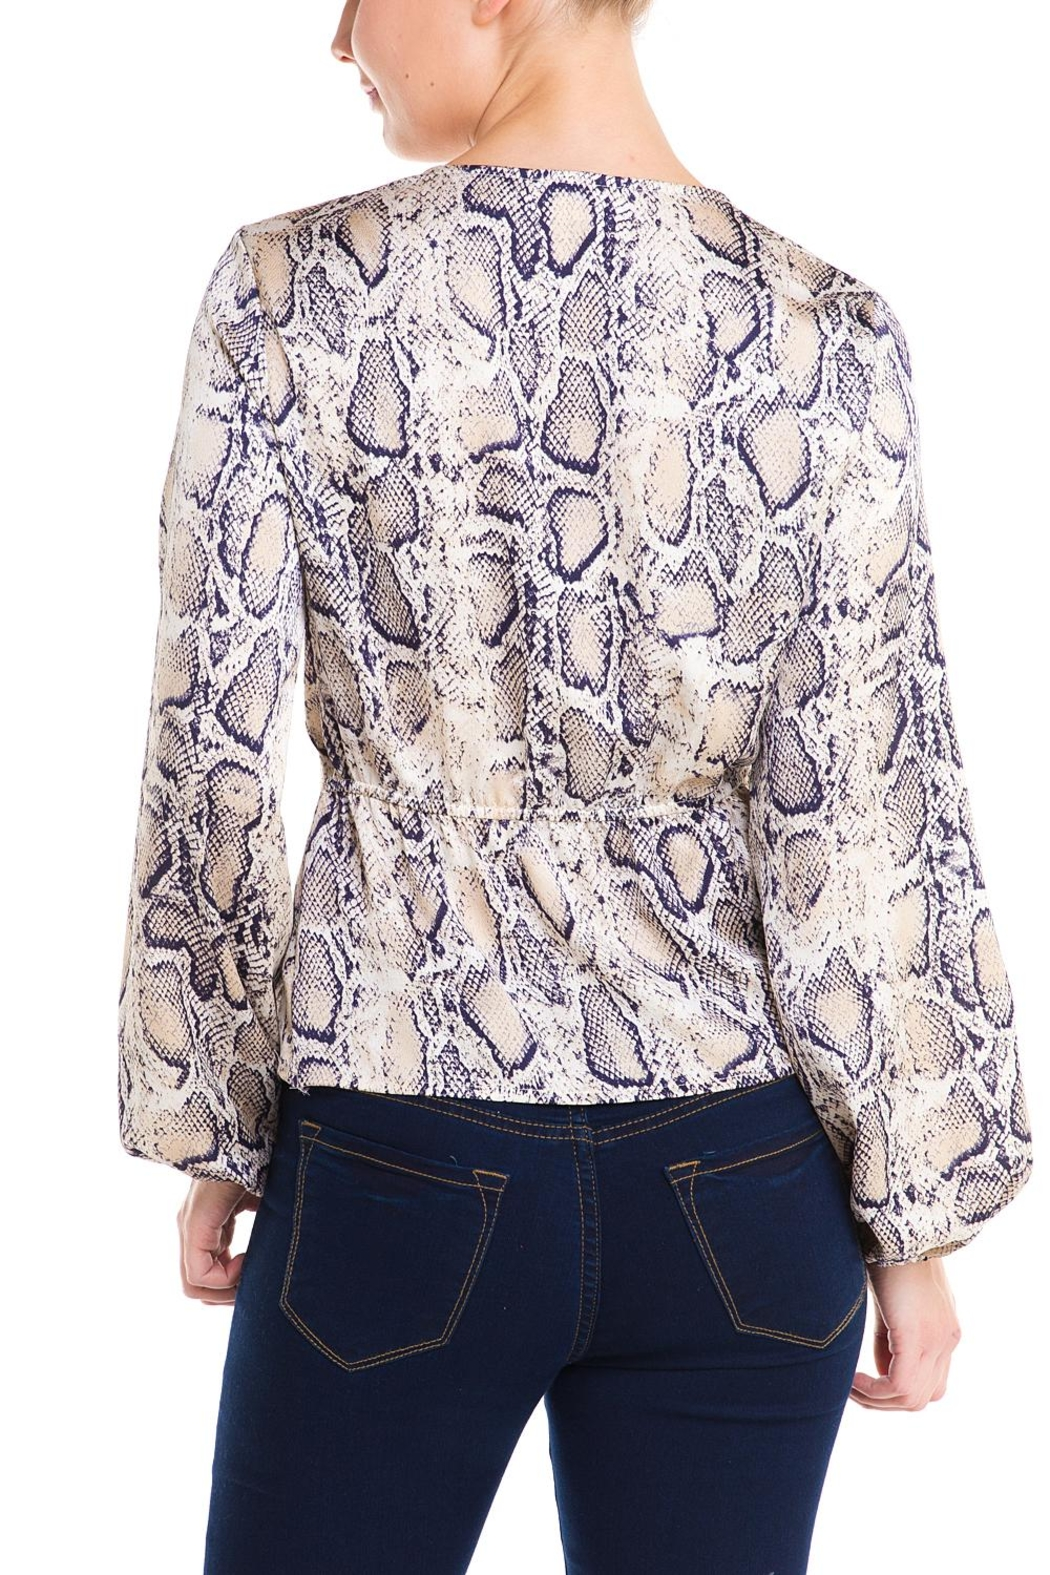 Idem Ditto  Snake Wrap Blouse - Back Cropped Image